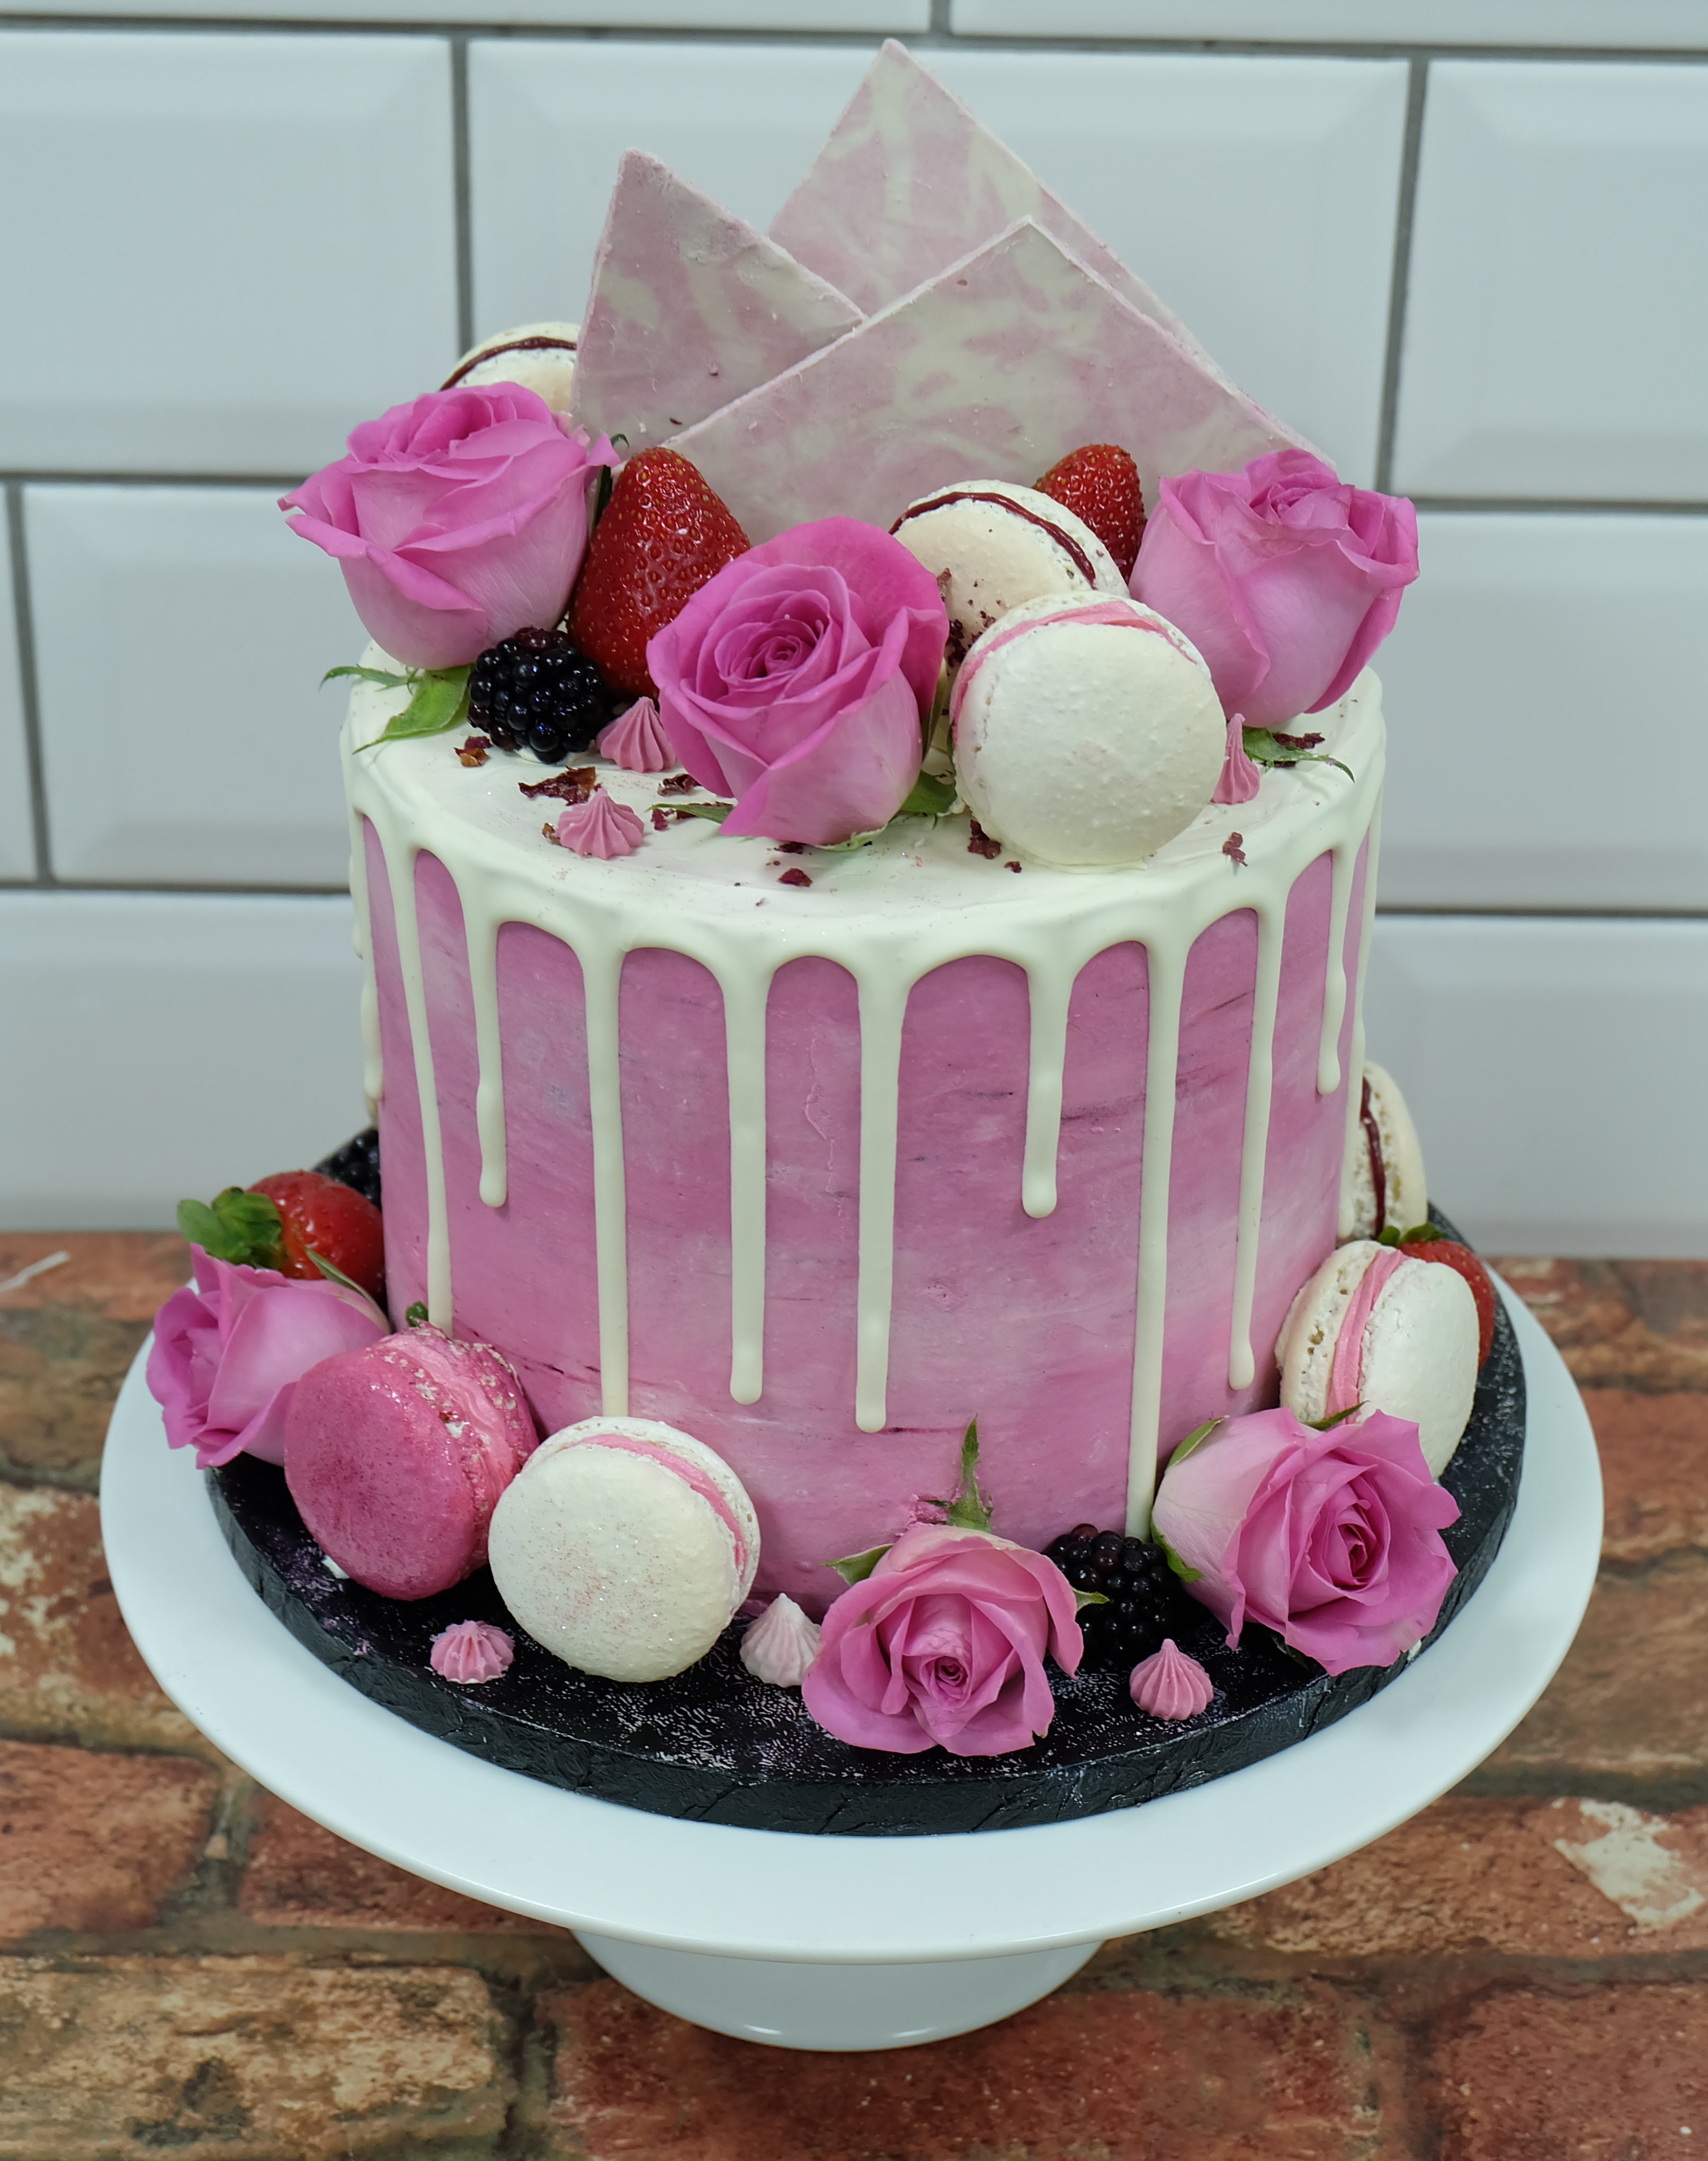 Pink Buttercream White Drip Cakes with Roses Macarons  Choc Shards and Fruits 2